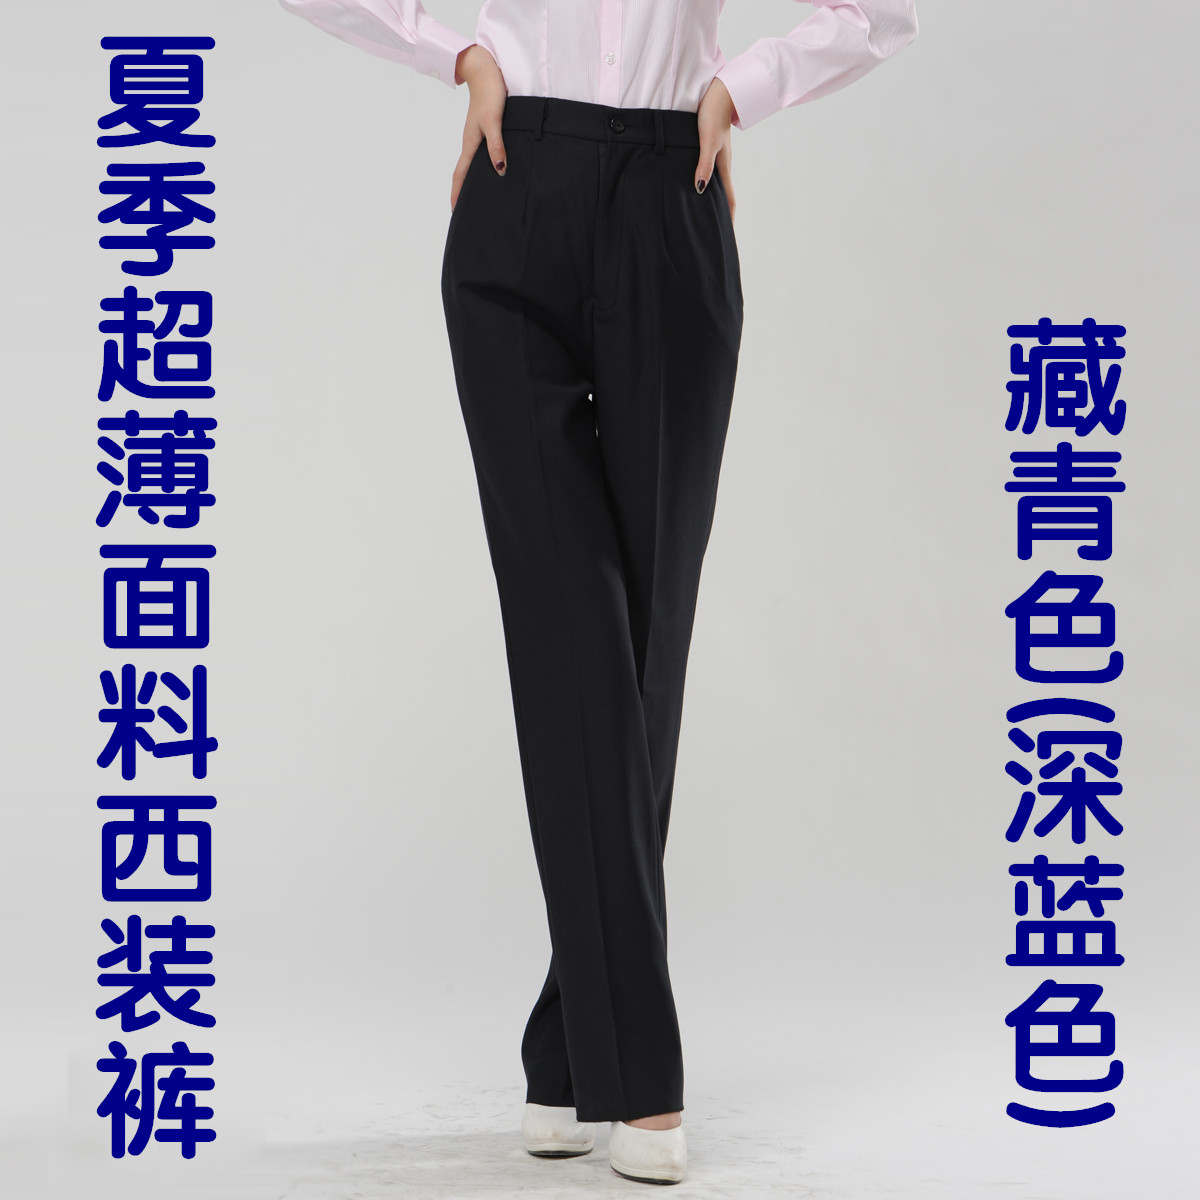 Summer ultra thin straight waist trousers, trousers, womens dress, formal dress, womens pants, professional work pants, navy suit pants